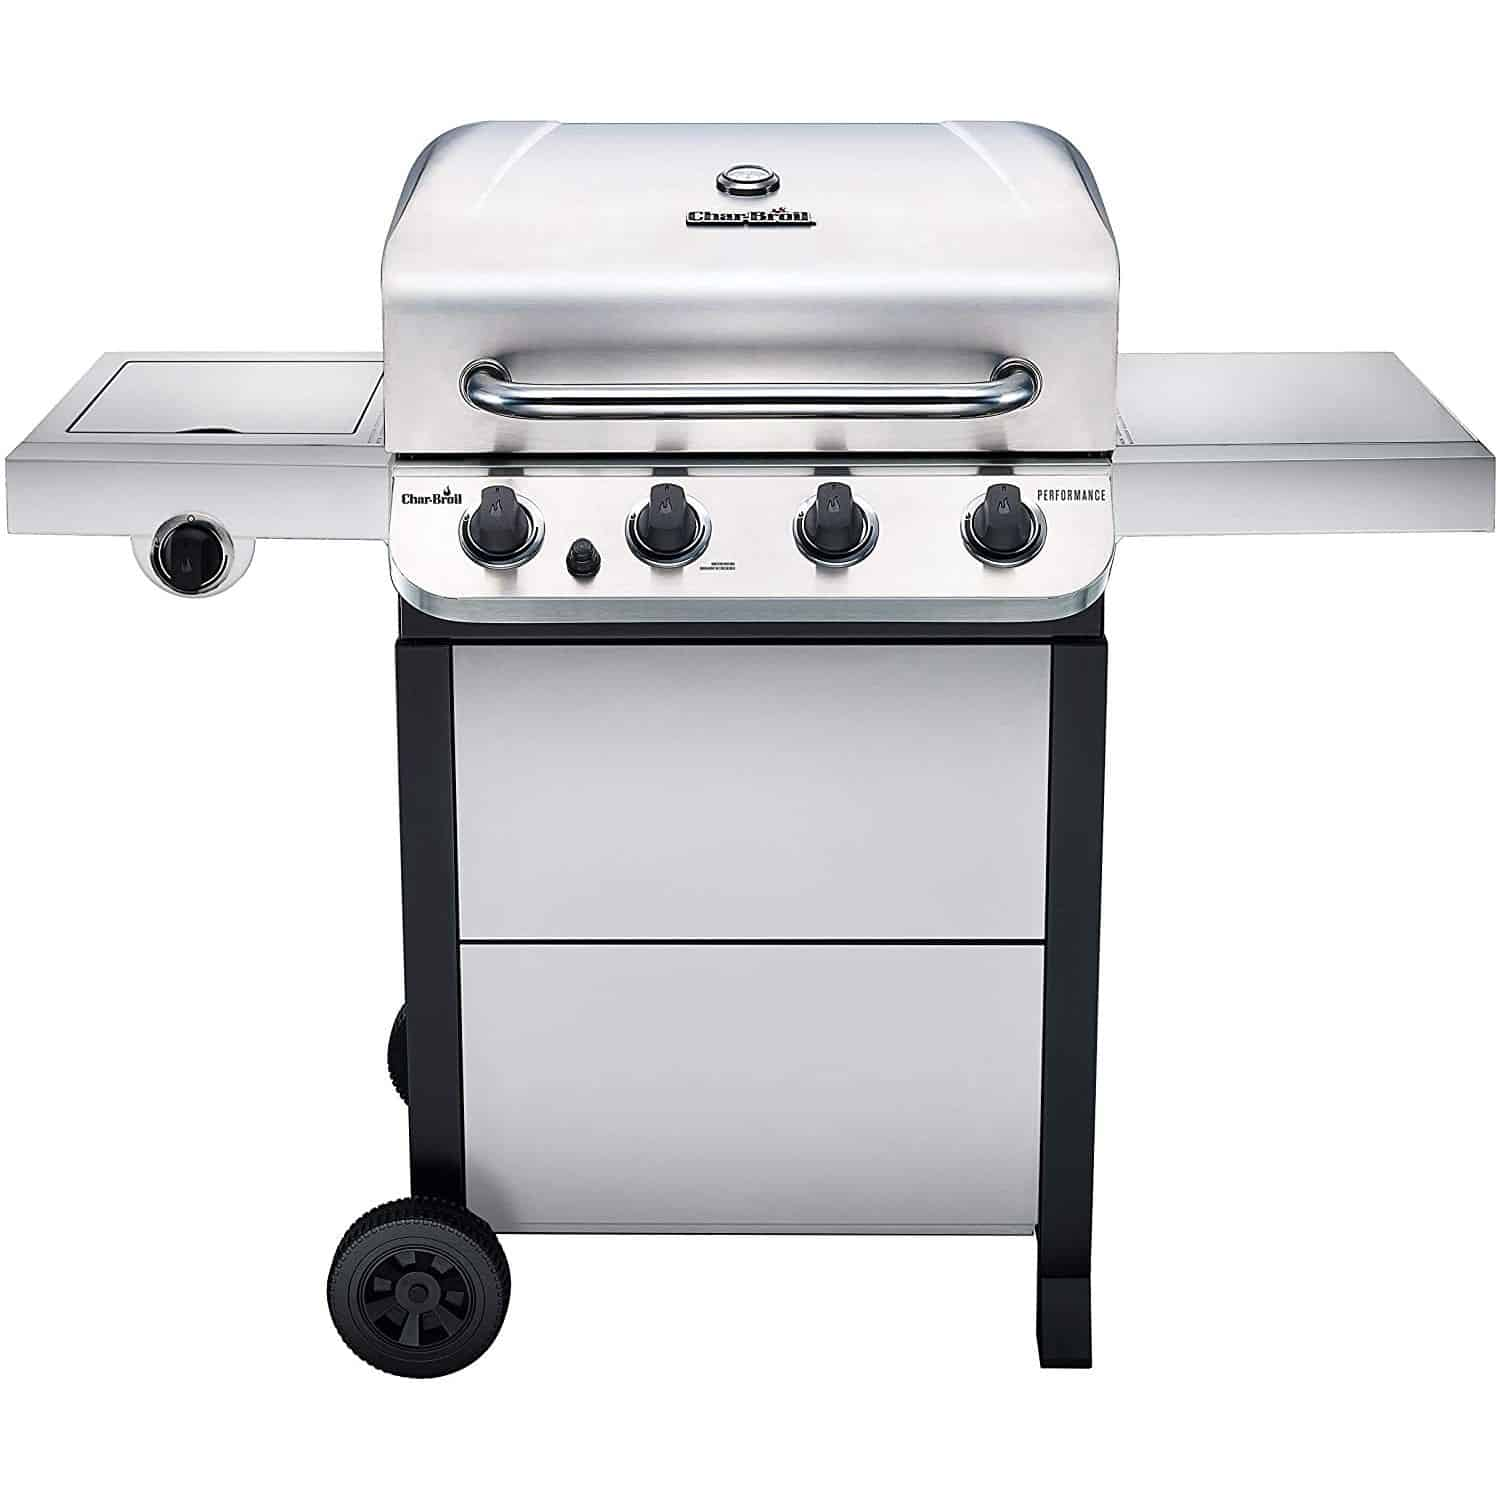 charbroil 463377319 performance 4-burner gas grill under $500